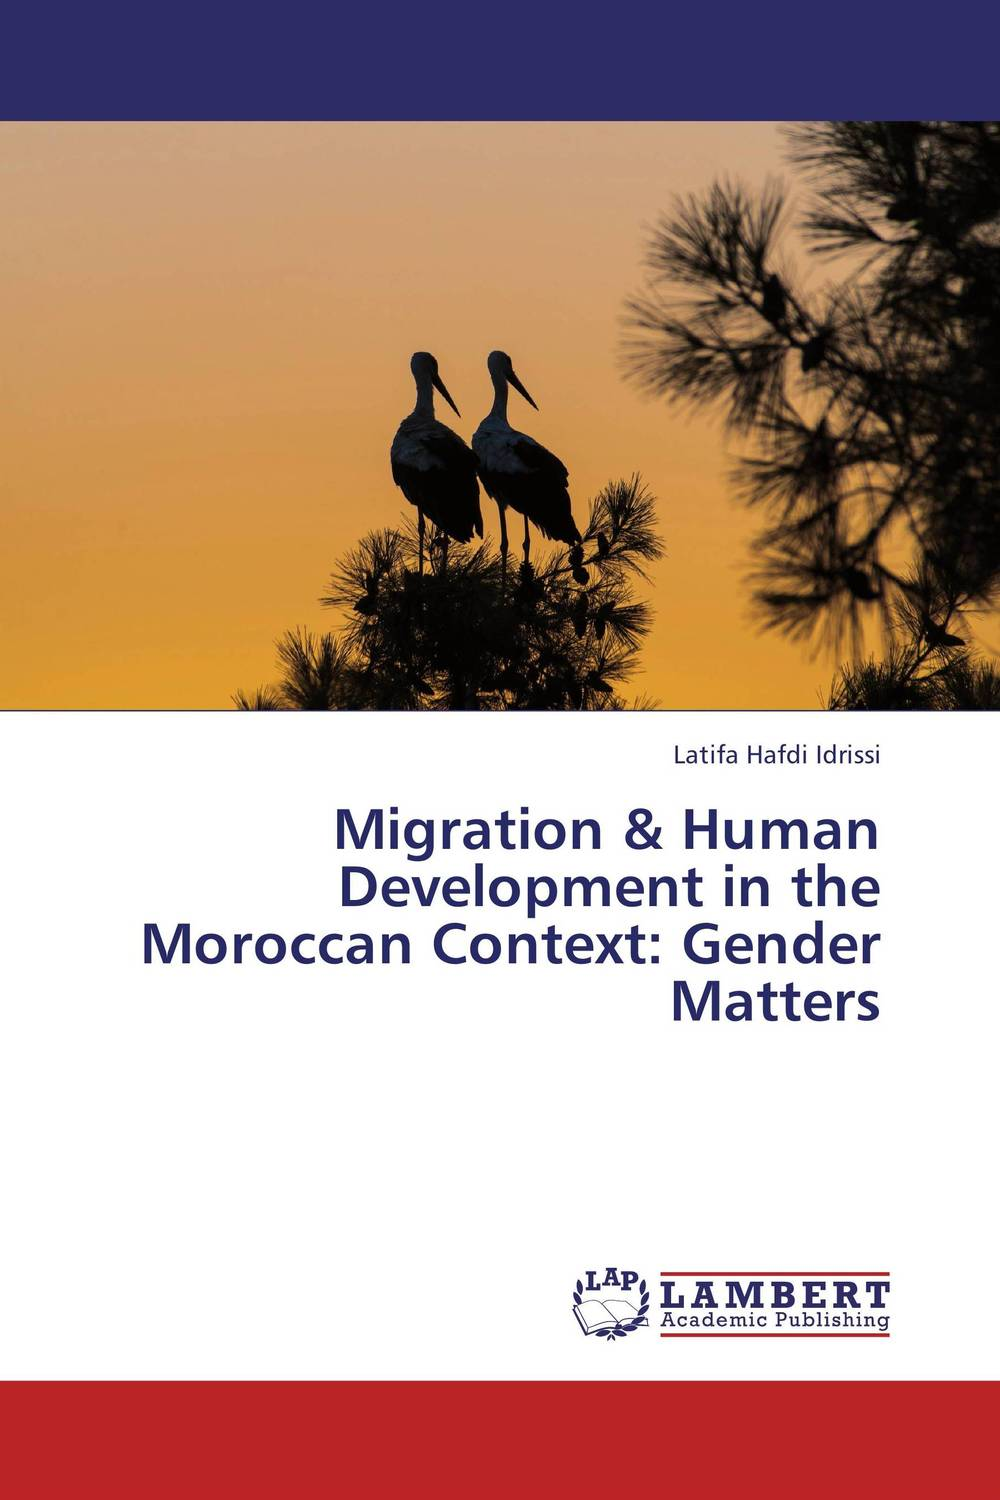 Migration & Human Development in the Moroccan Context: Gender Matters